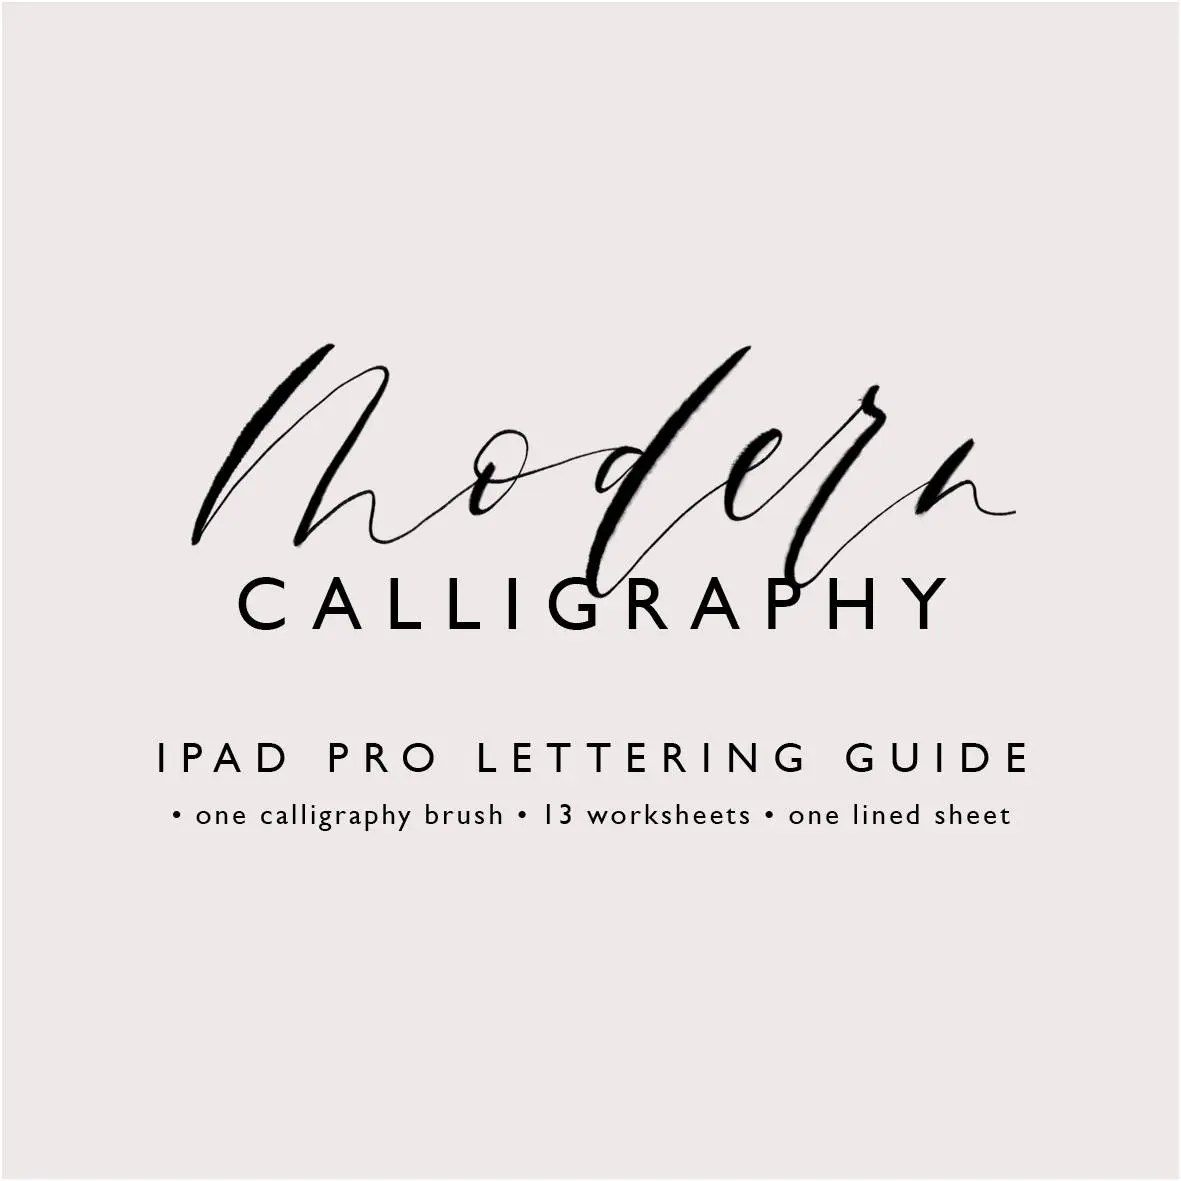 Modern Calligraphy Ipad Pro Lettering Guide From Clarariemer On Etsy Studio